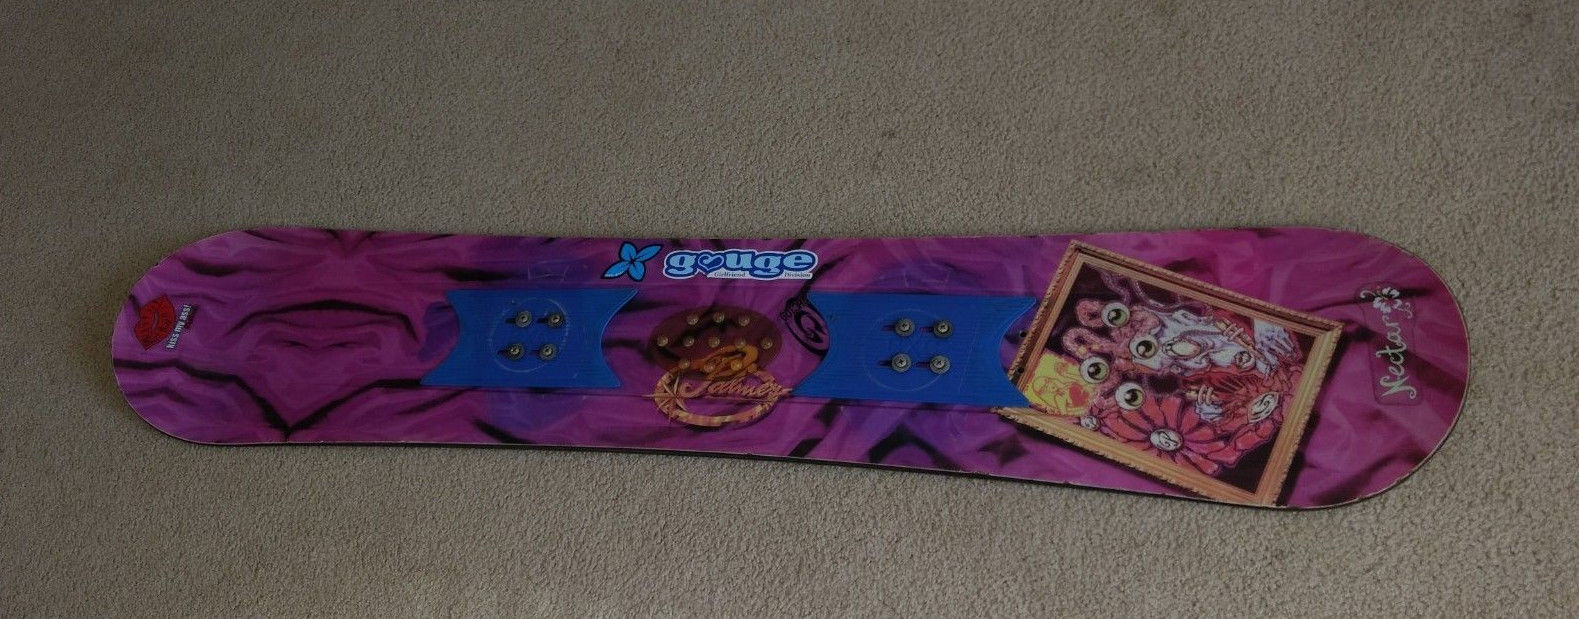 Snowboard girls woman's Palmer mad scientist purple no bindings